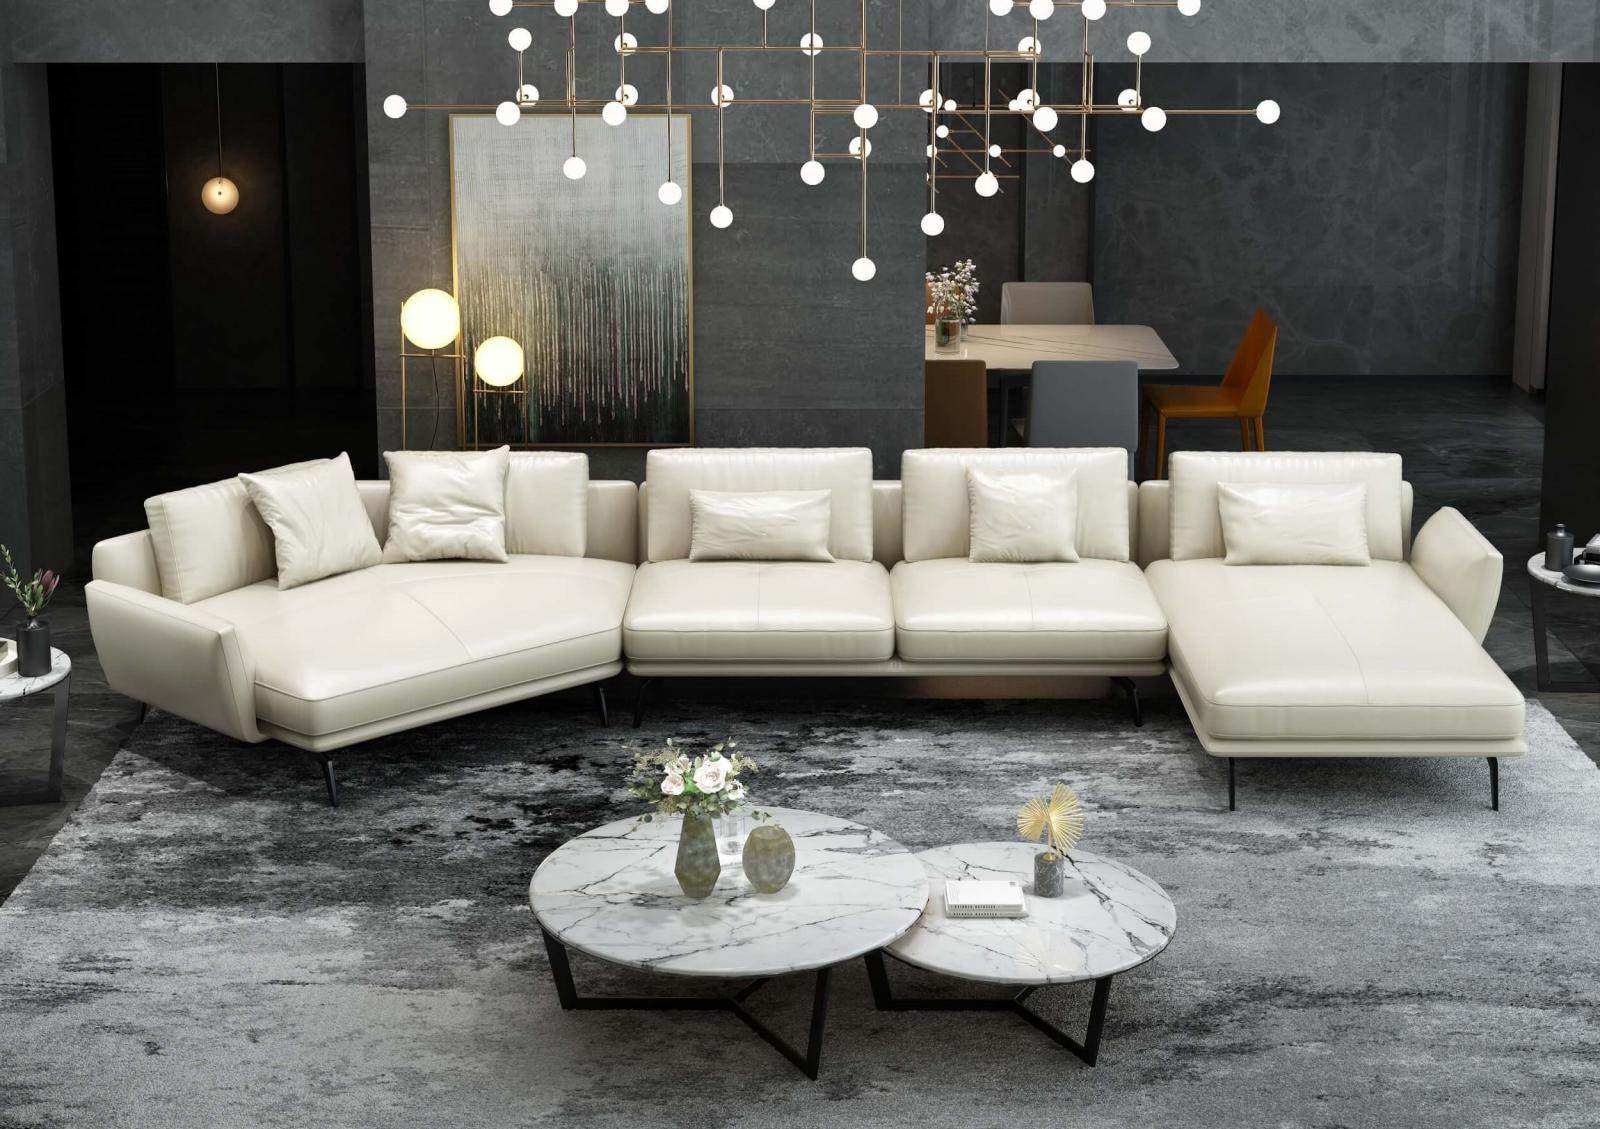 Modern  Vintage White Wood  Genuine leather  Solid Hardwood and Italian Leather Sectional Sofa EUROPEAN FURNITURE EF-83543R-3RHF